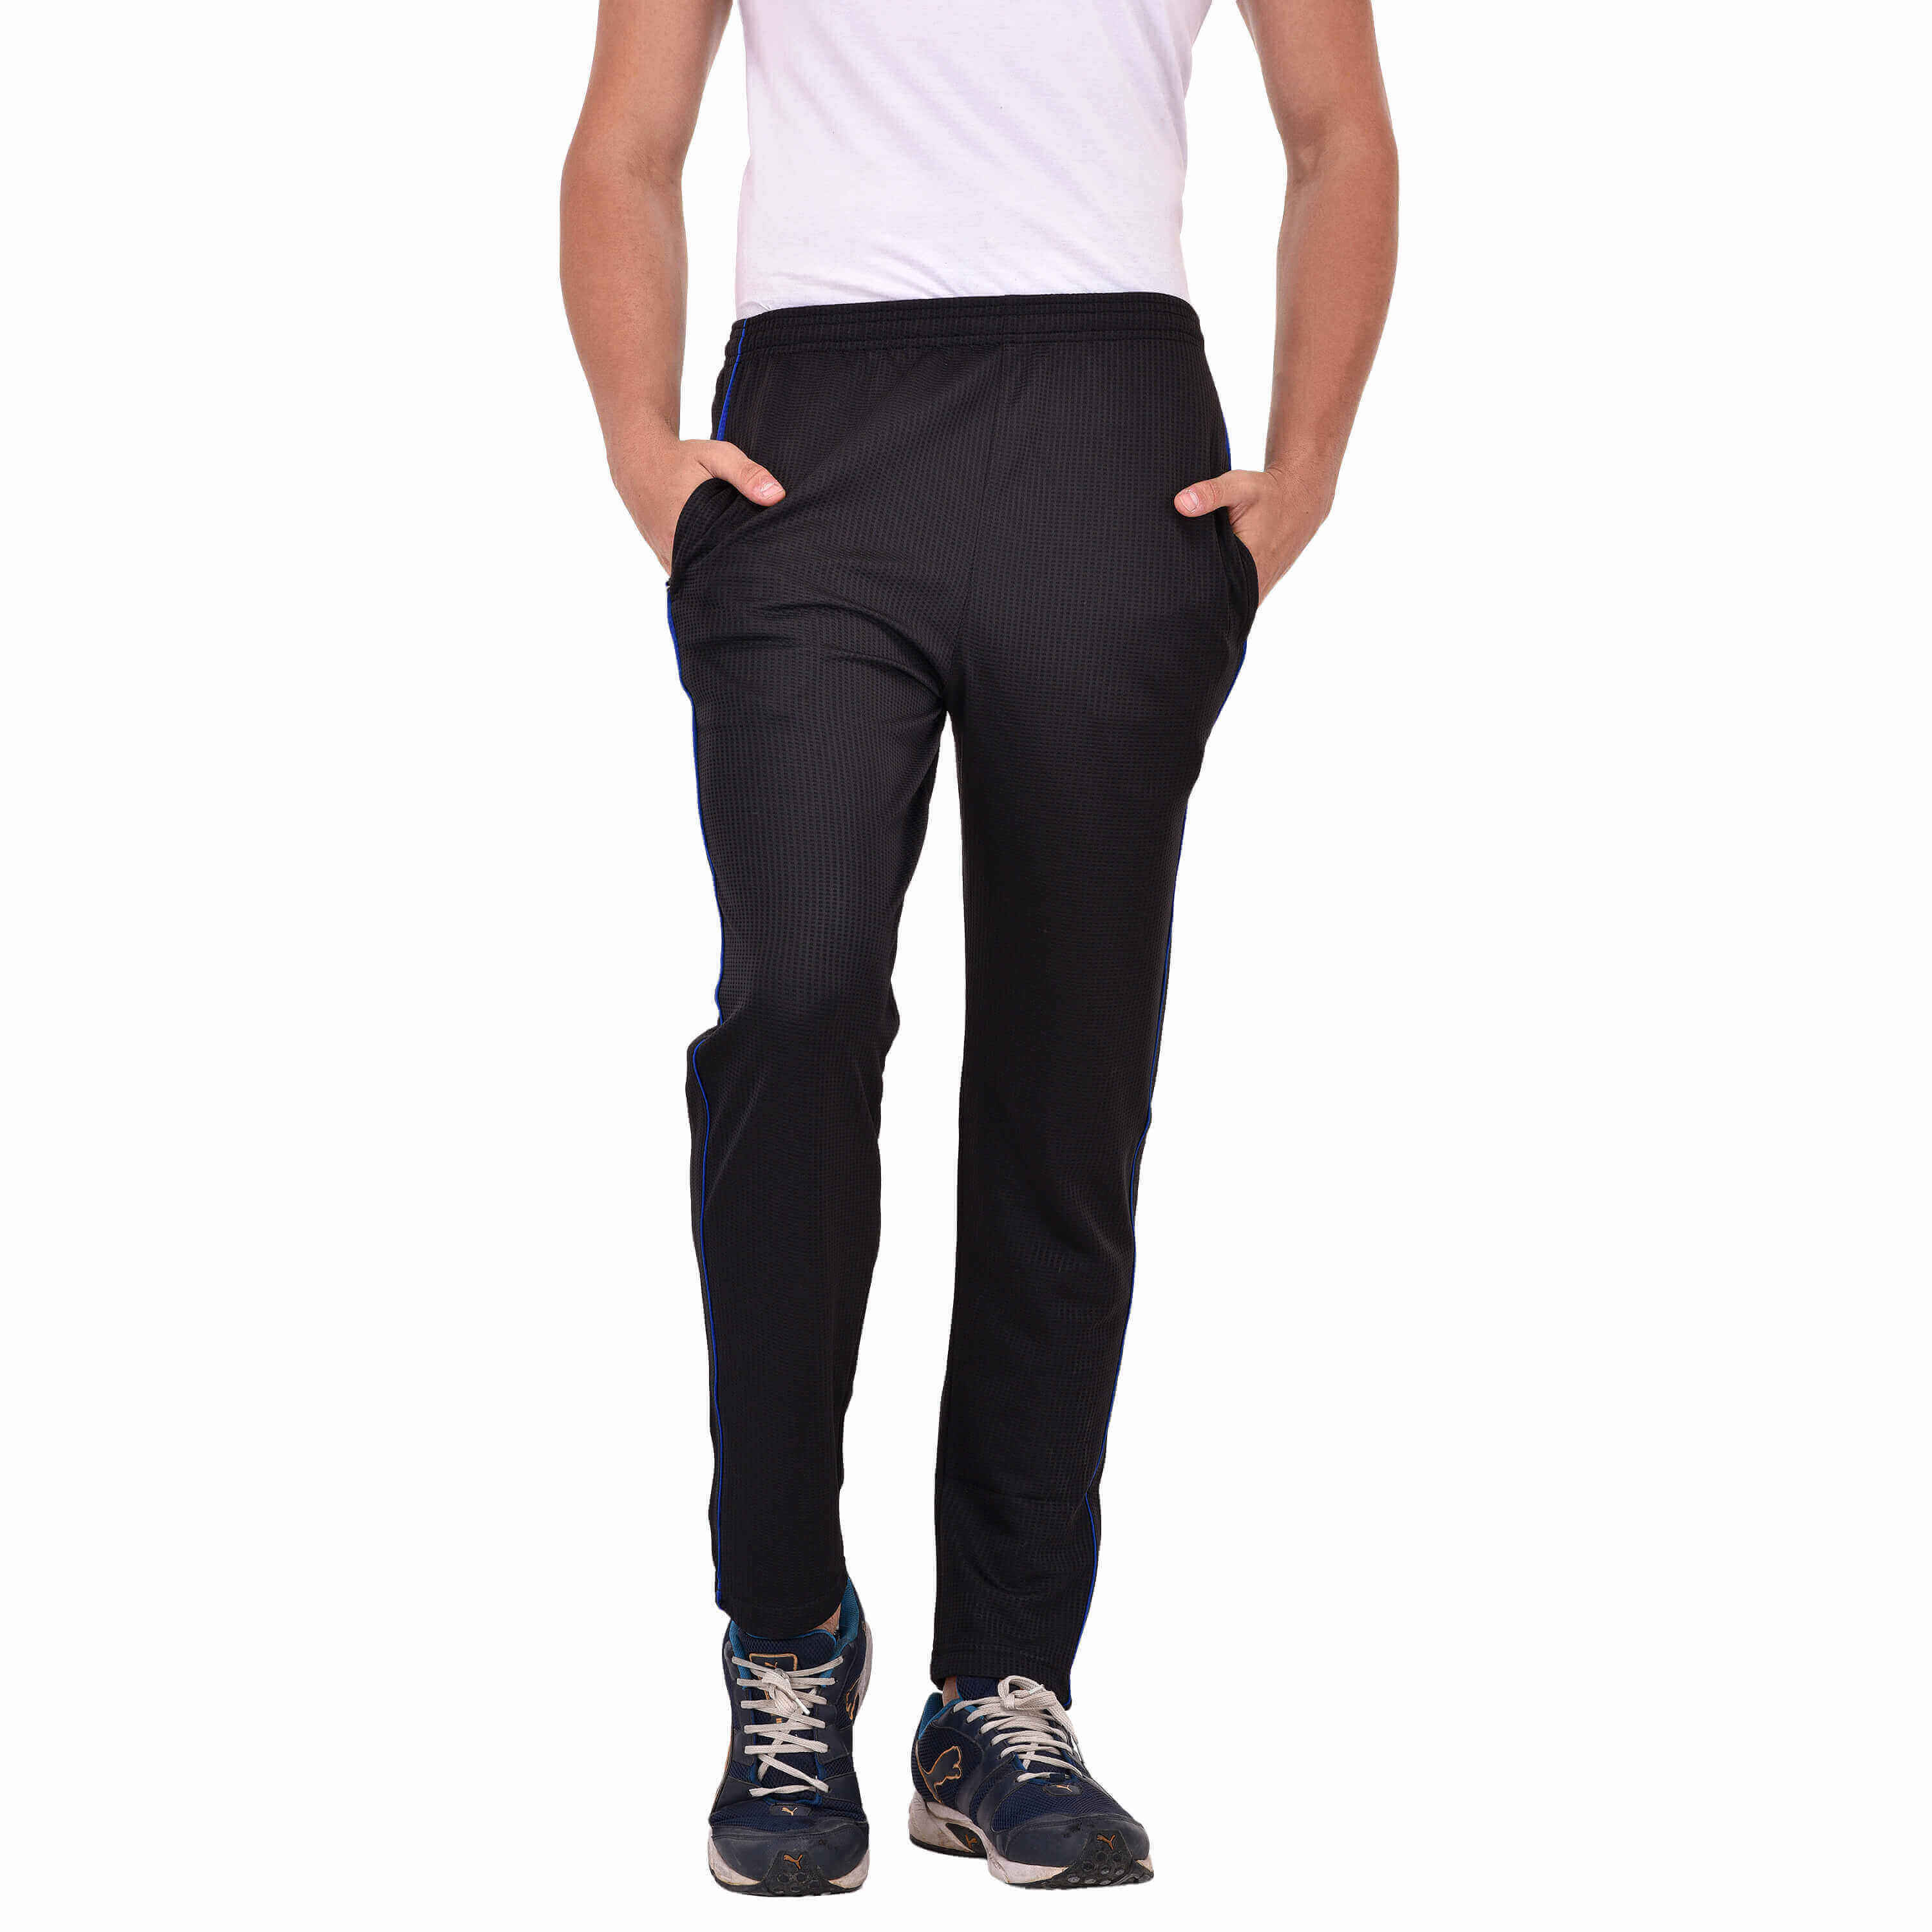 Mens Tracksuit Bottoms Manufacturers in Raipur